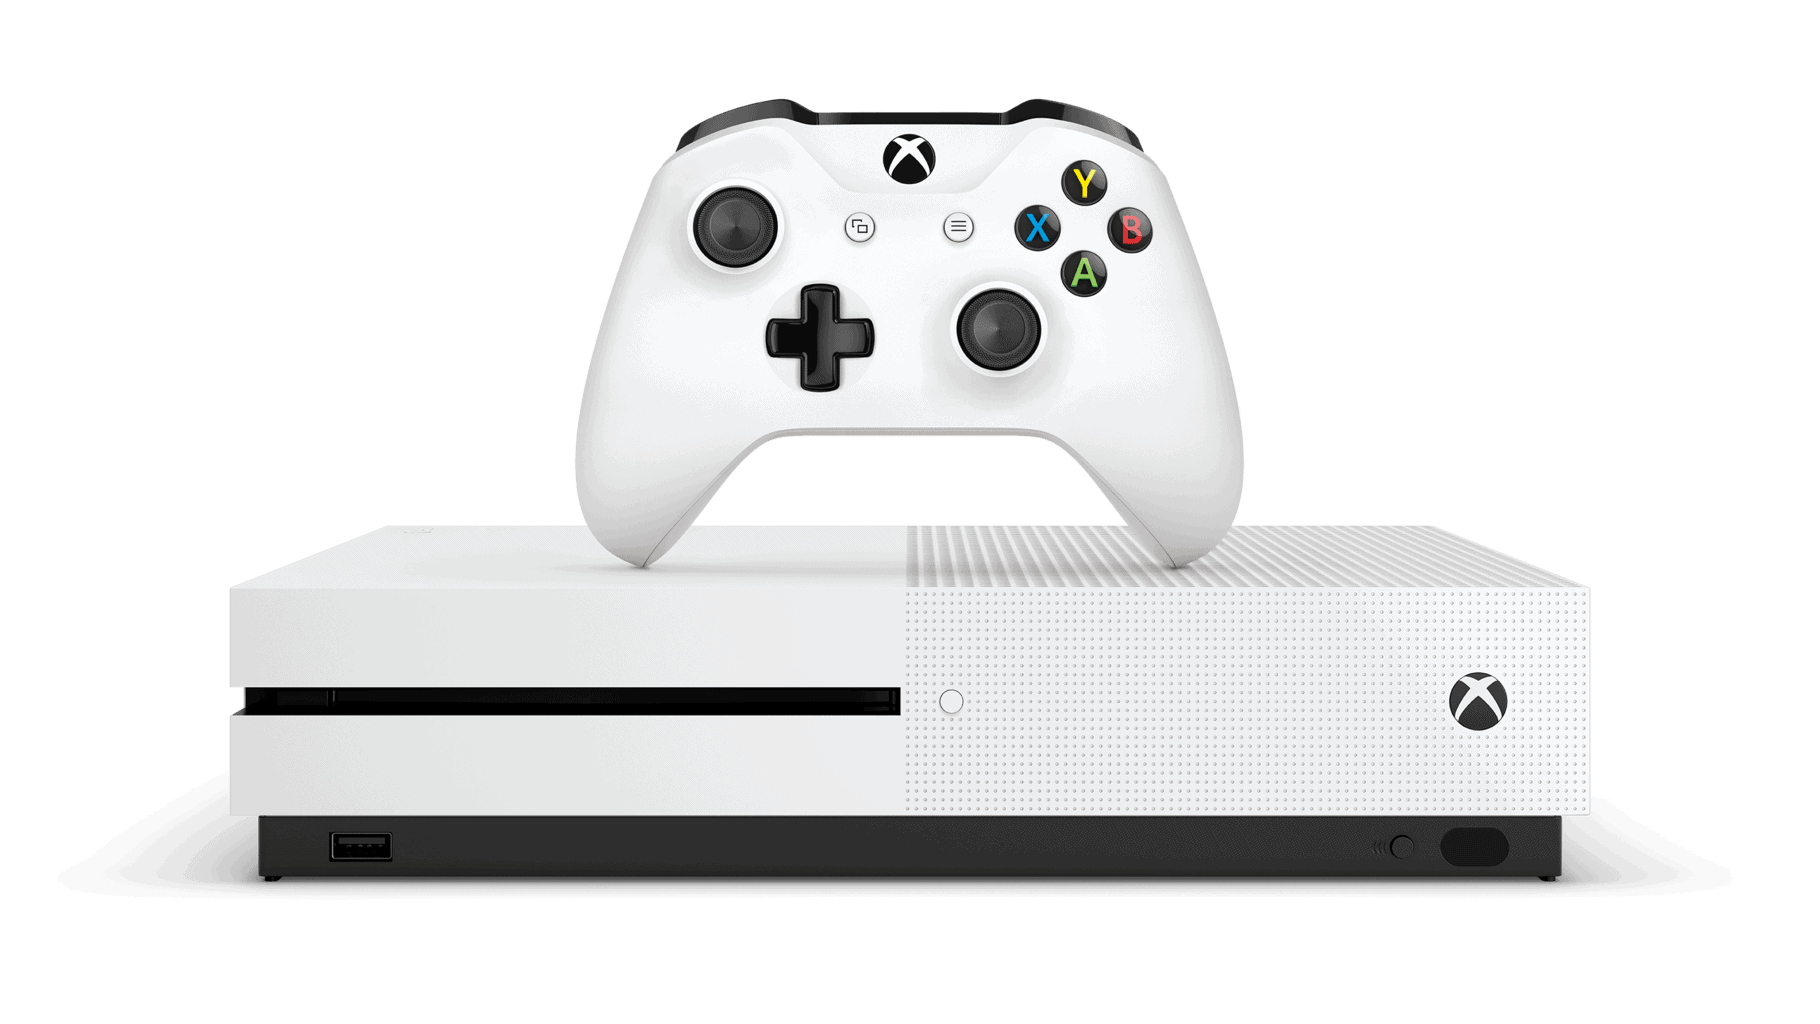 Microsoft Corporation (NASDAQ:MSFT) Xbox Project Scorpio